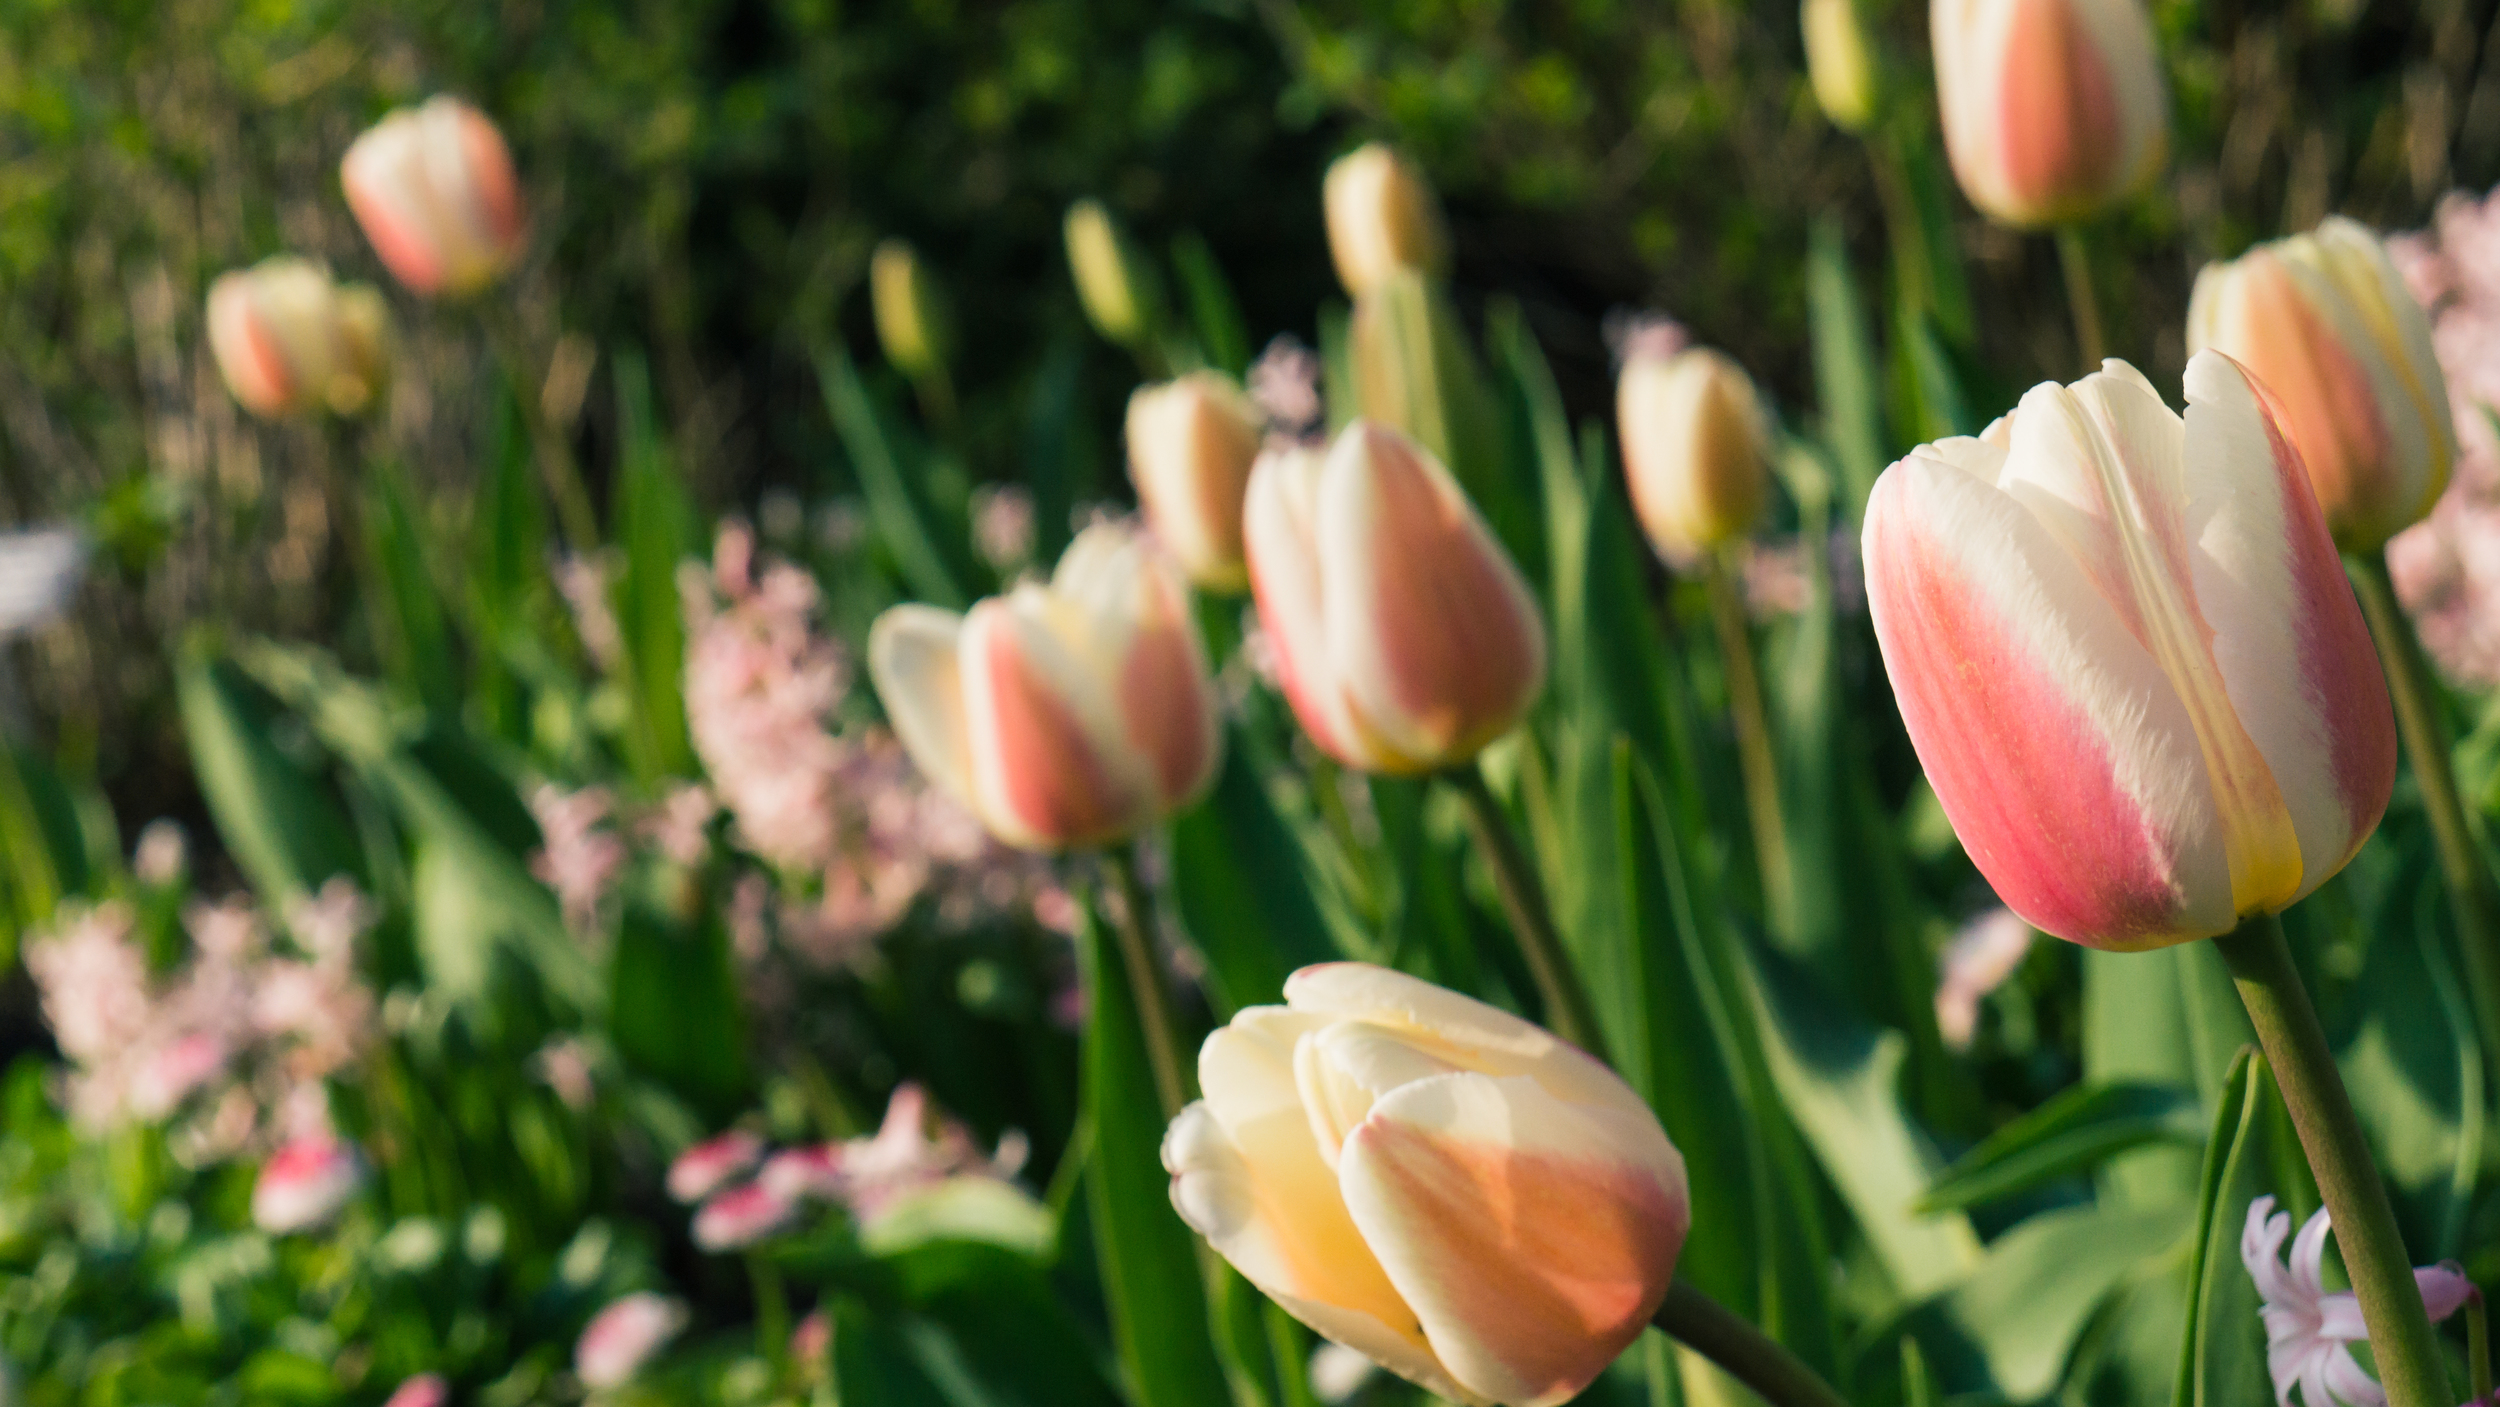 Spring Tulips at the Chicago Botanic Garden